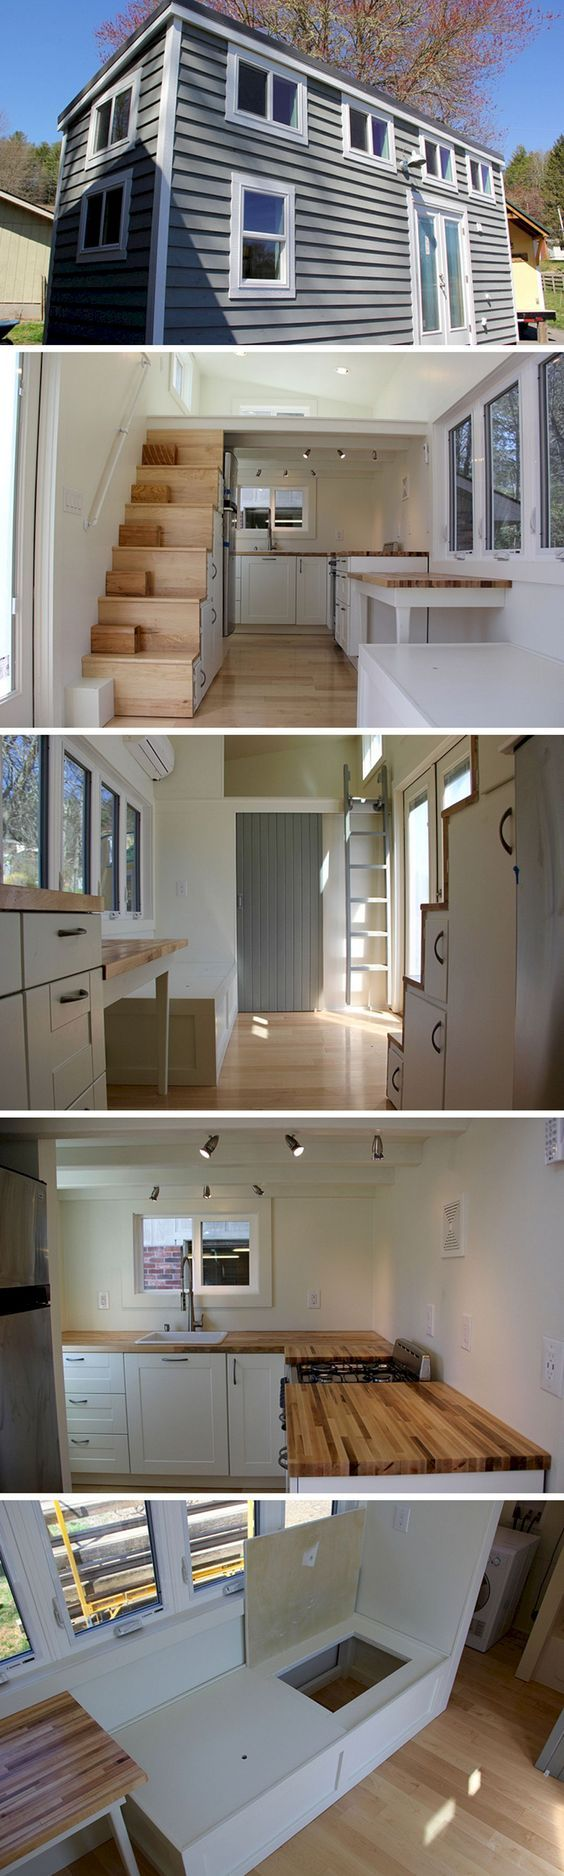 10+ Best and Stunning Tiny House on Wheels that You Must Have Right Now